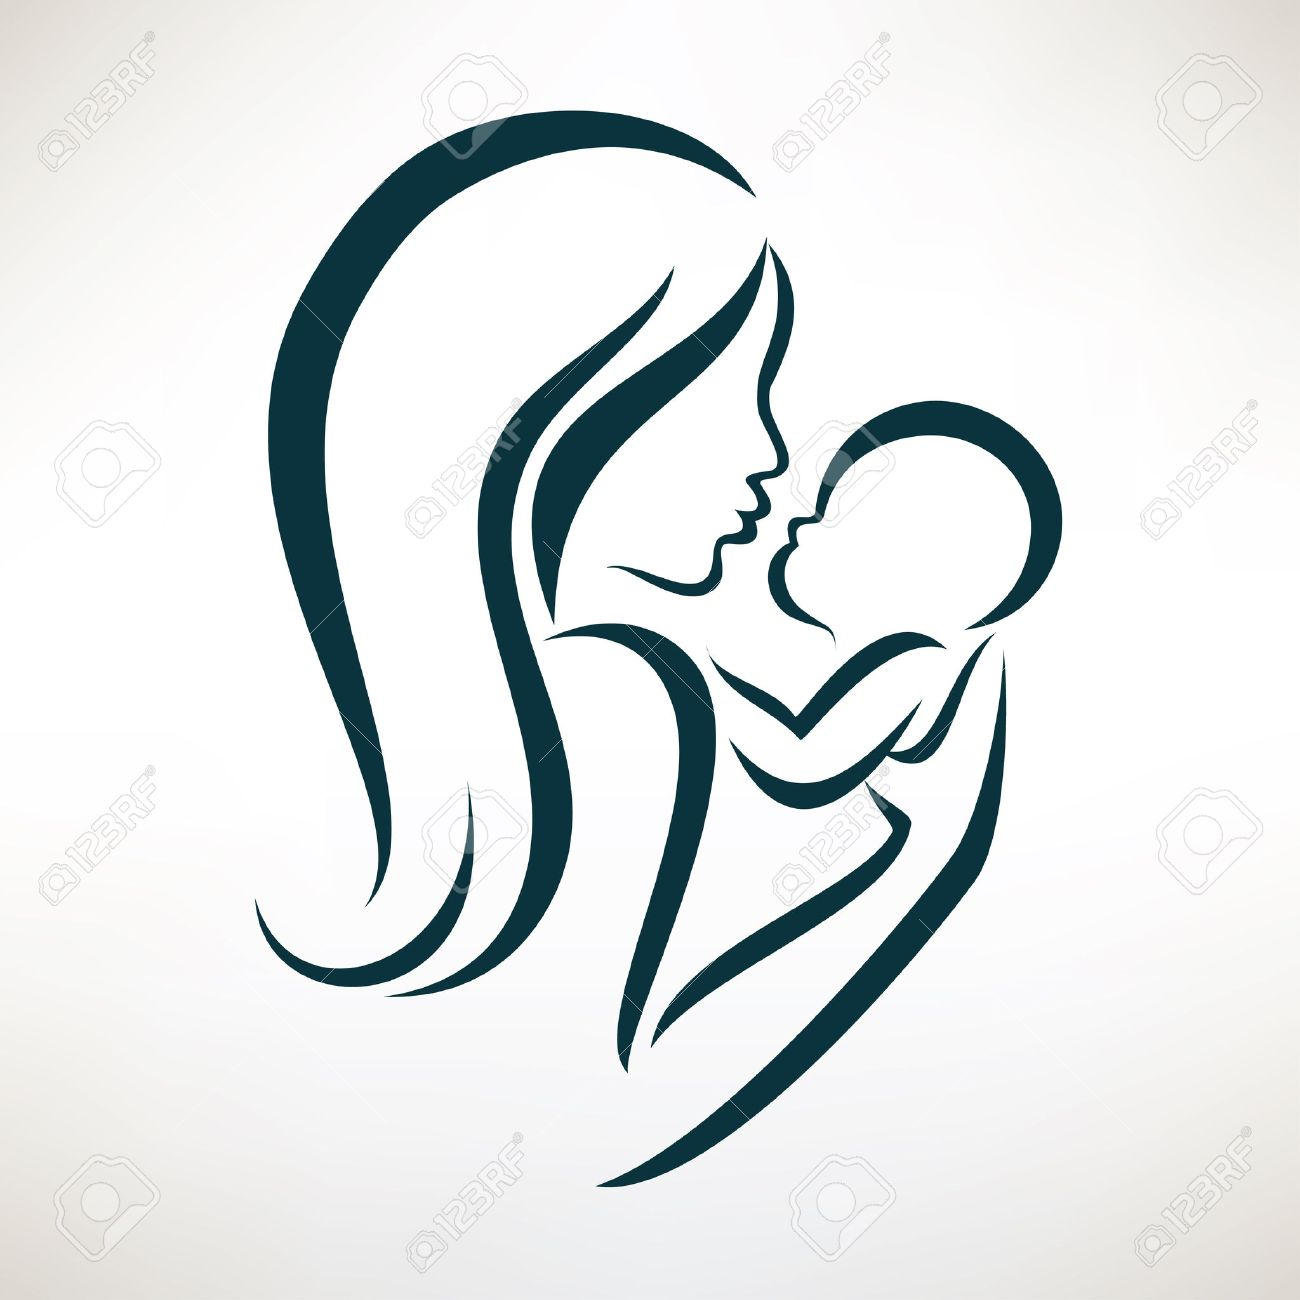 68897 Mother And Baby Cliparts Stock Vector And Royalty Free